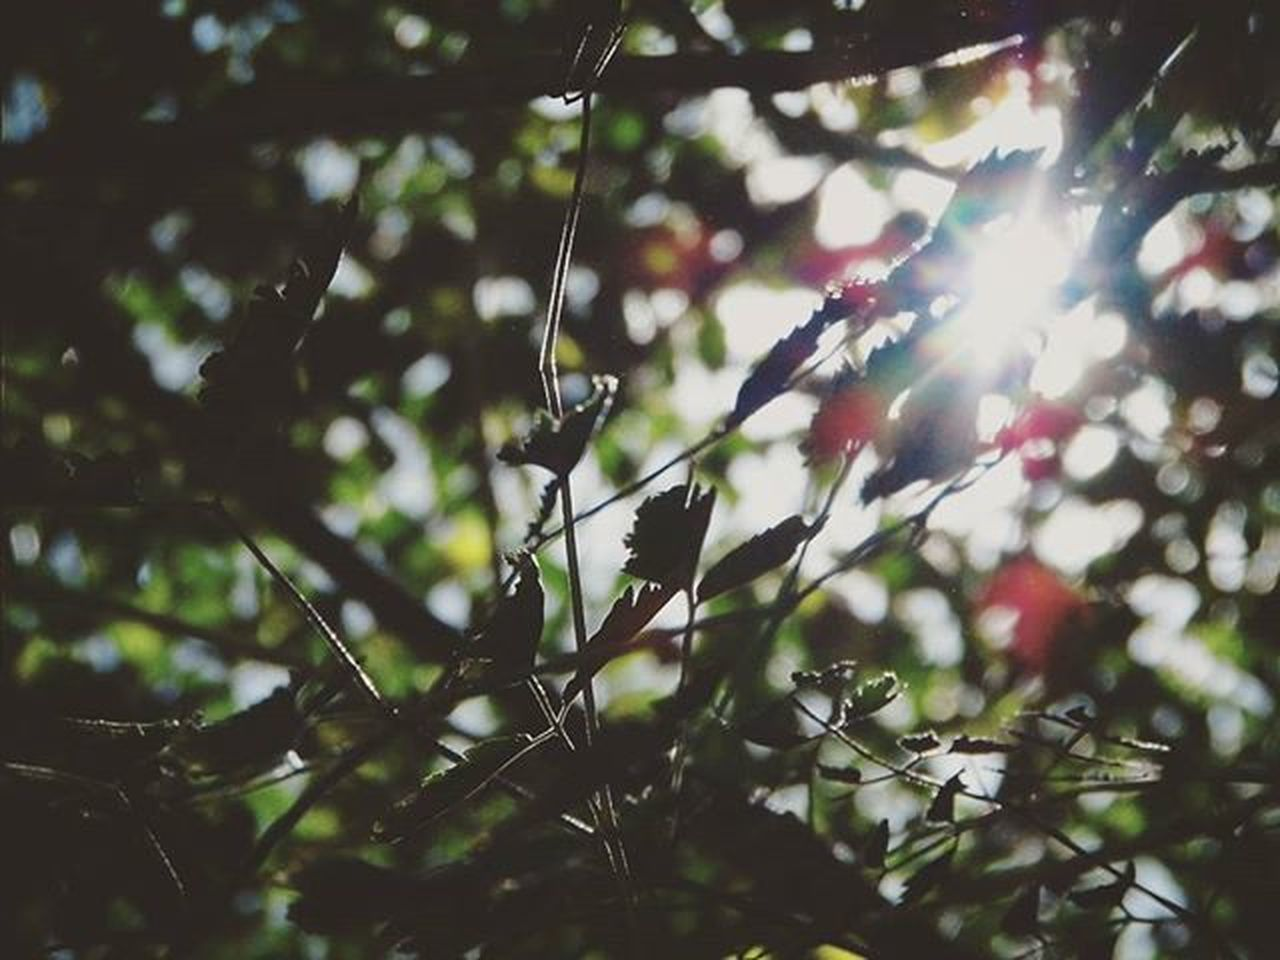 nature, tree, outdoors, no people, day, beauty in nature, growth, animal themes, branch, fragility, freshness, close-up